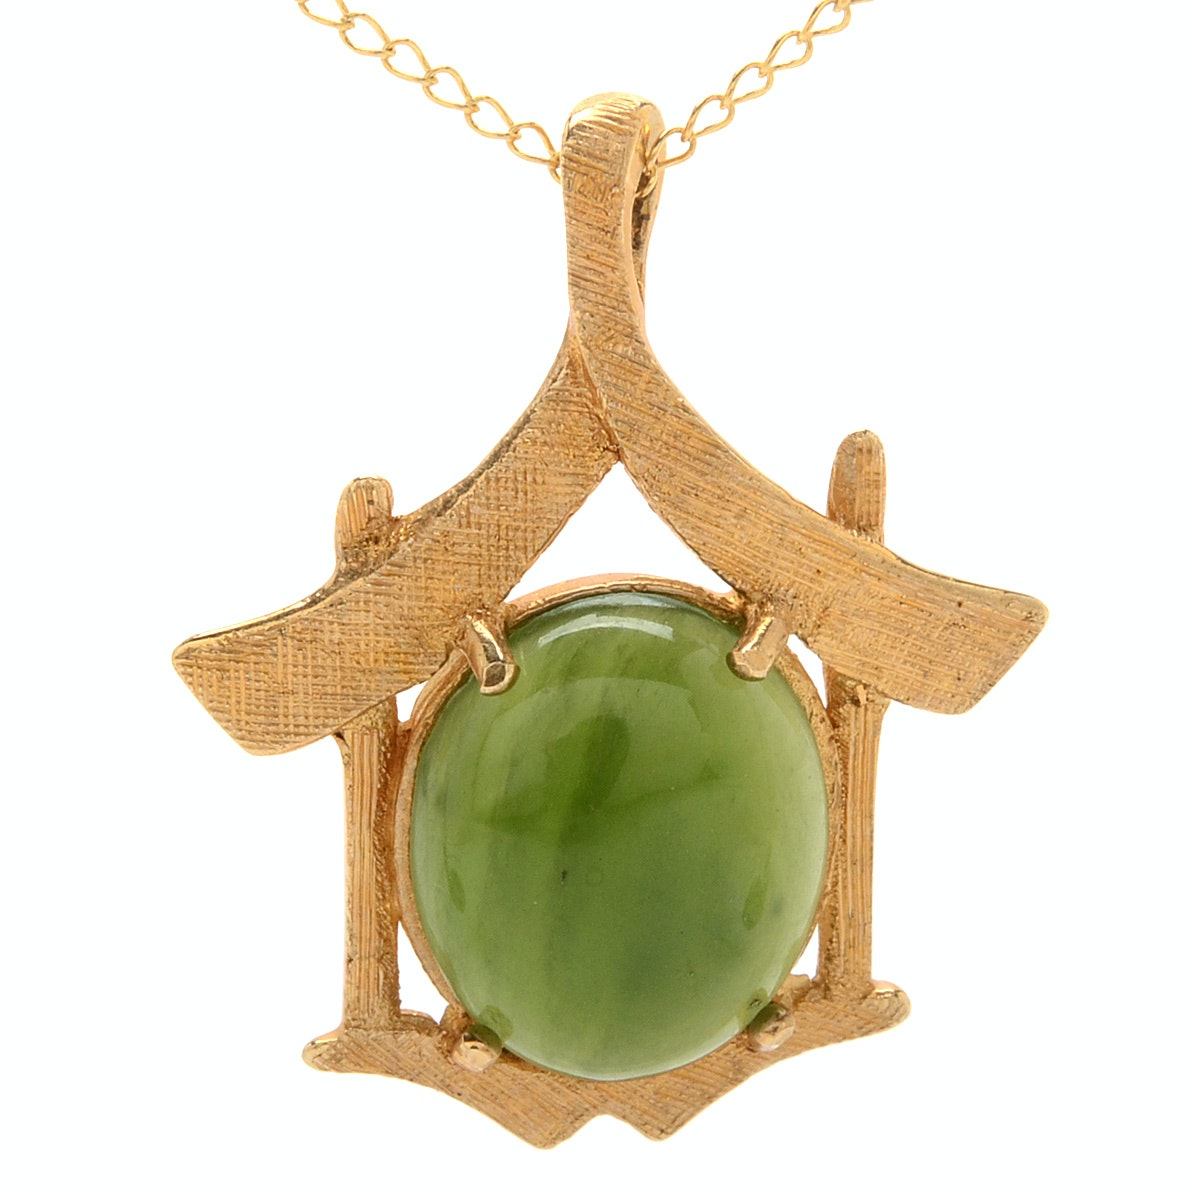 14K Yellow Gold Nephrite Pendant Necklace